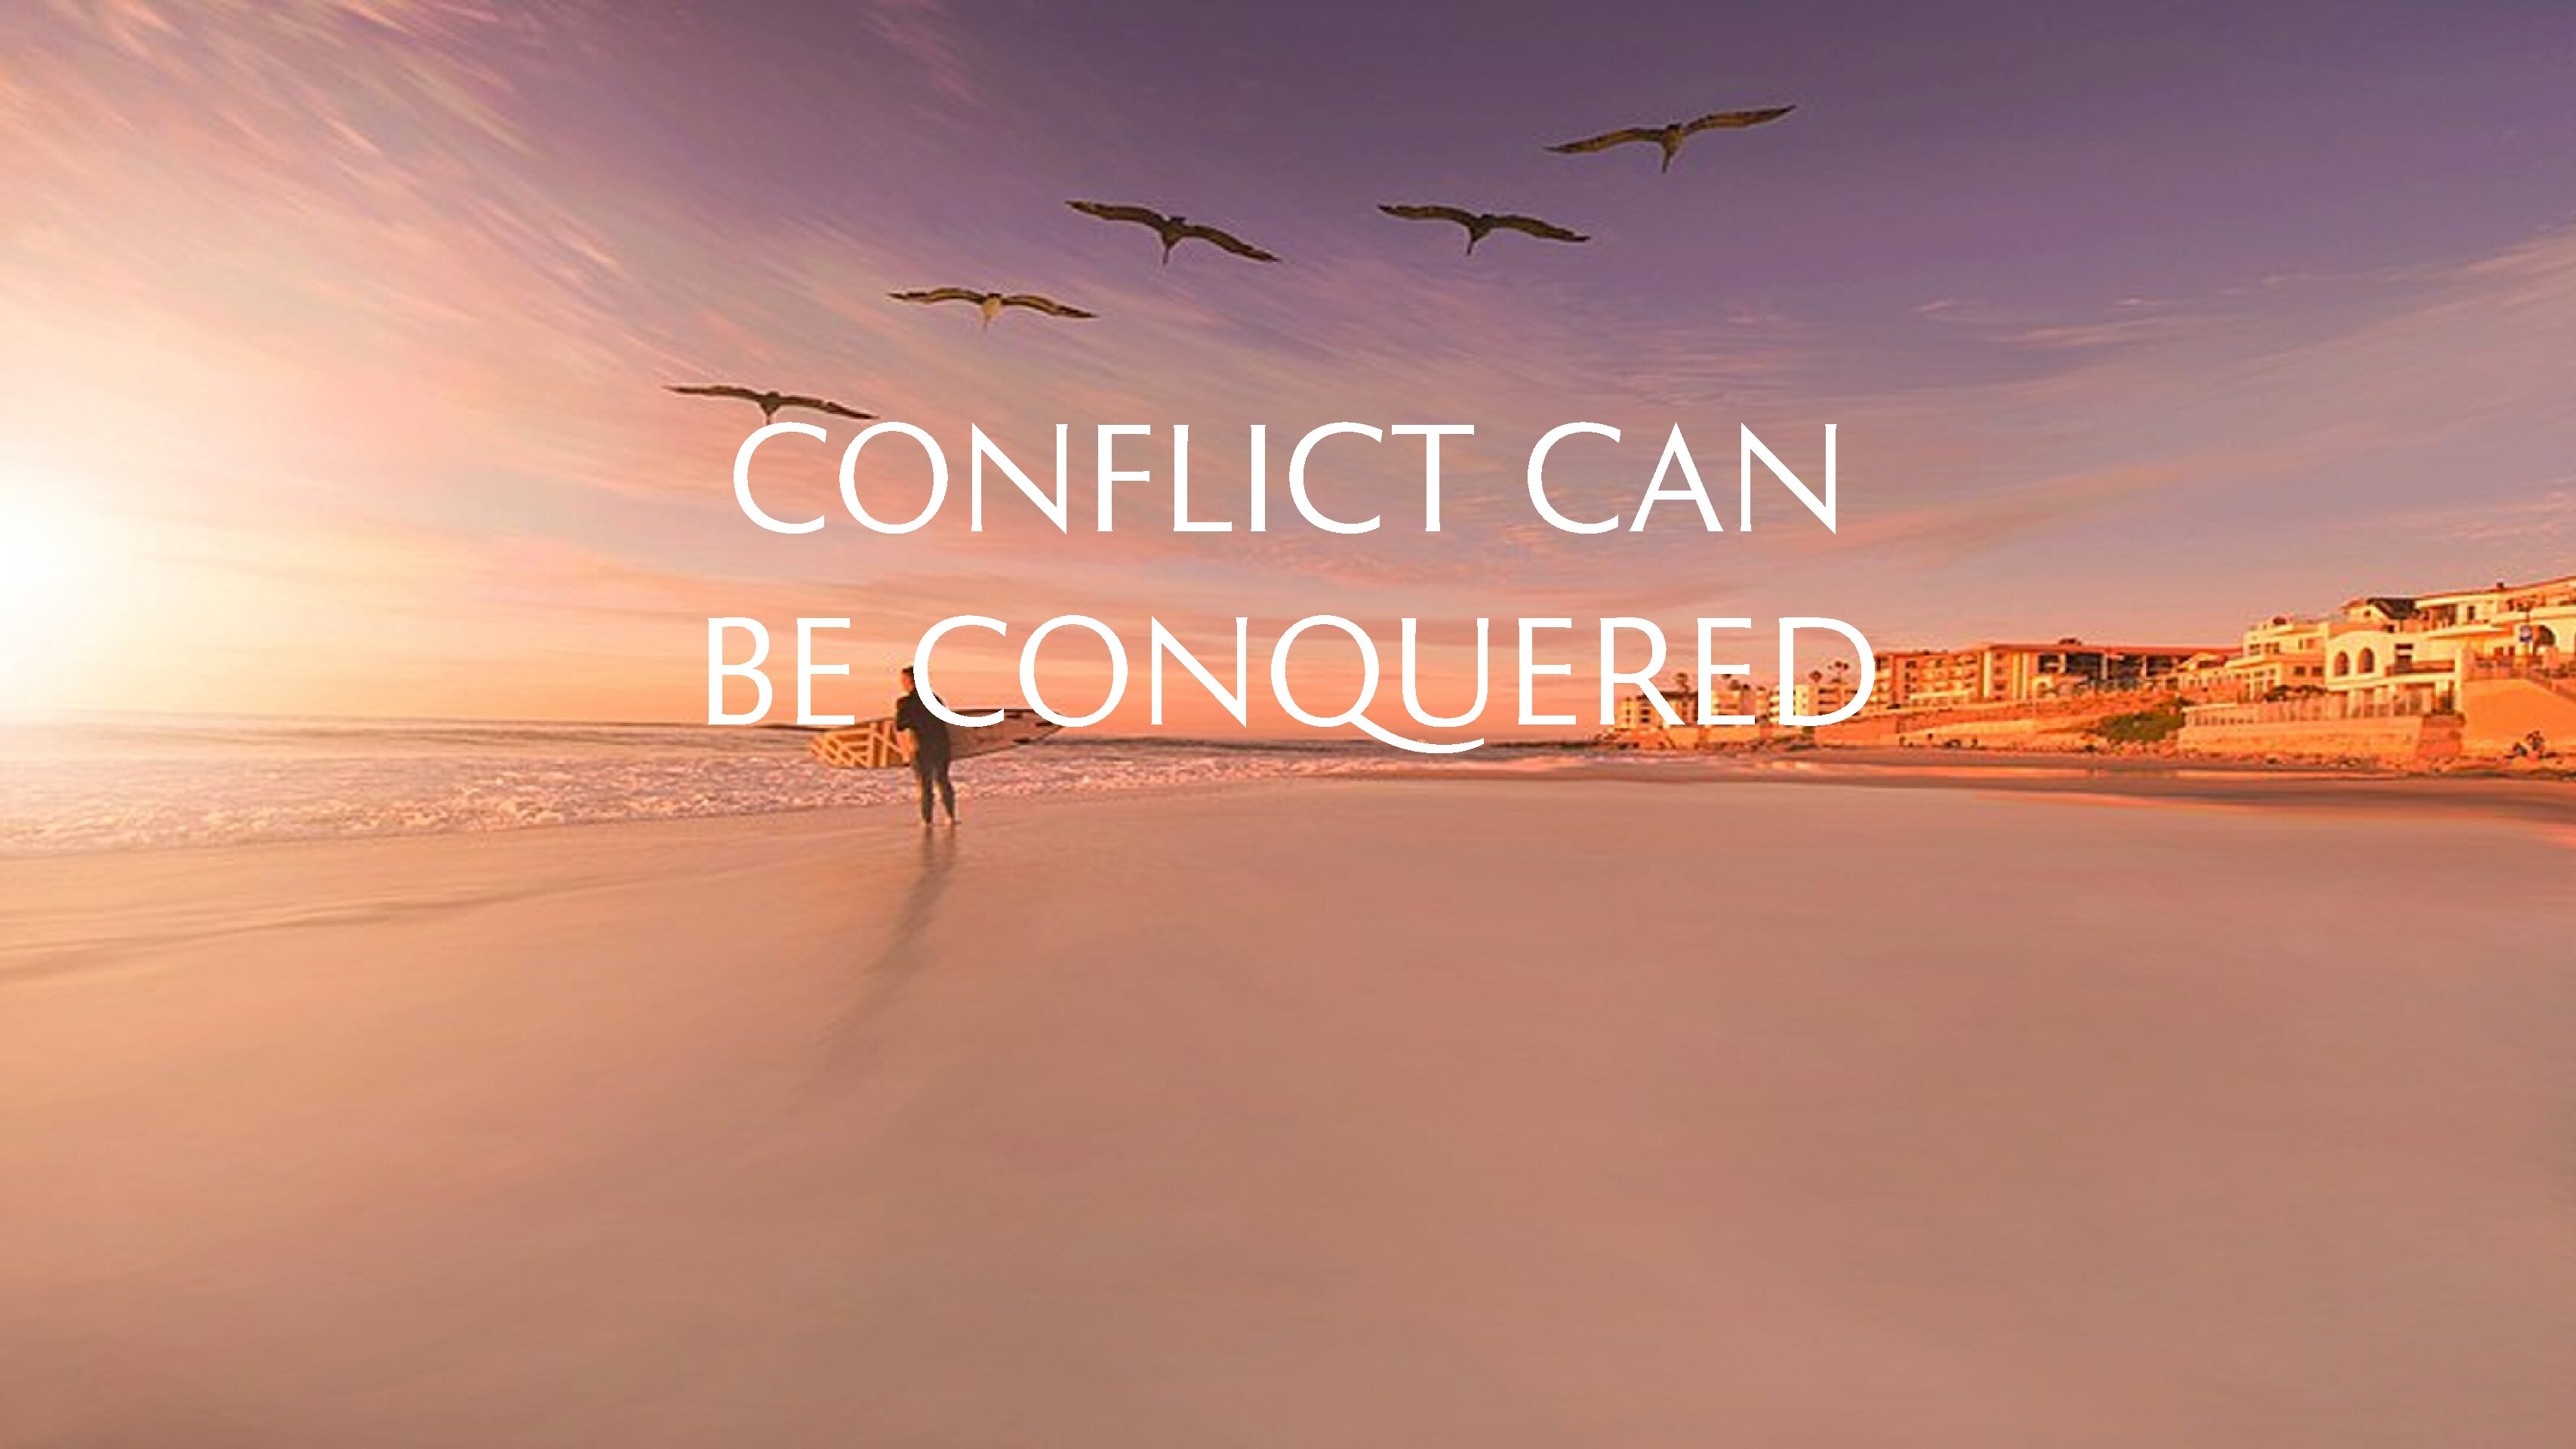 Conflict Can Be Conquered